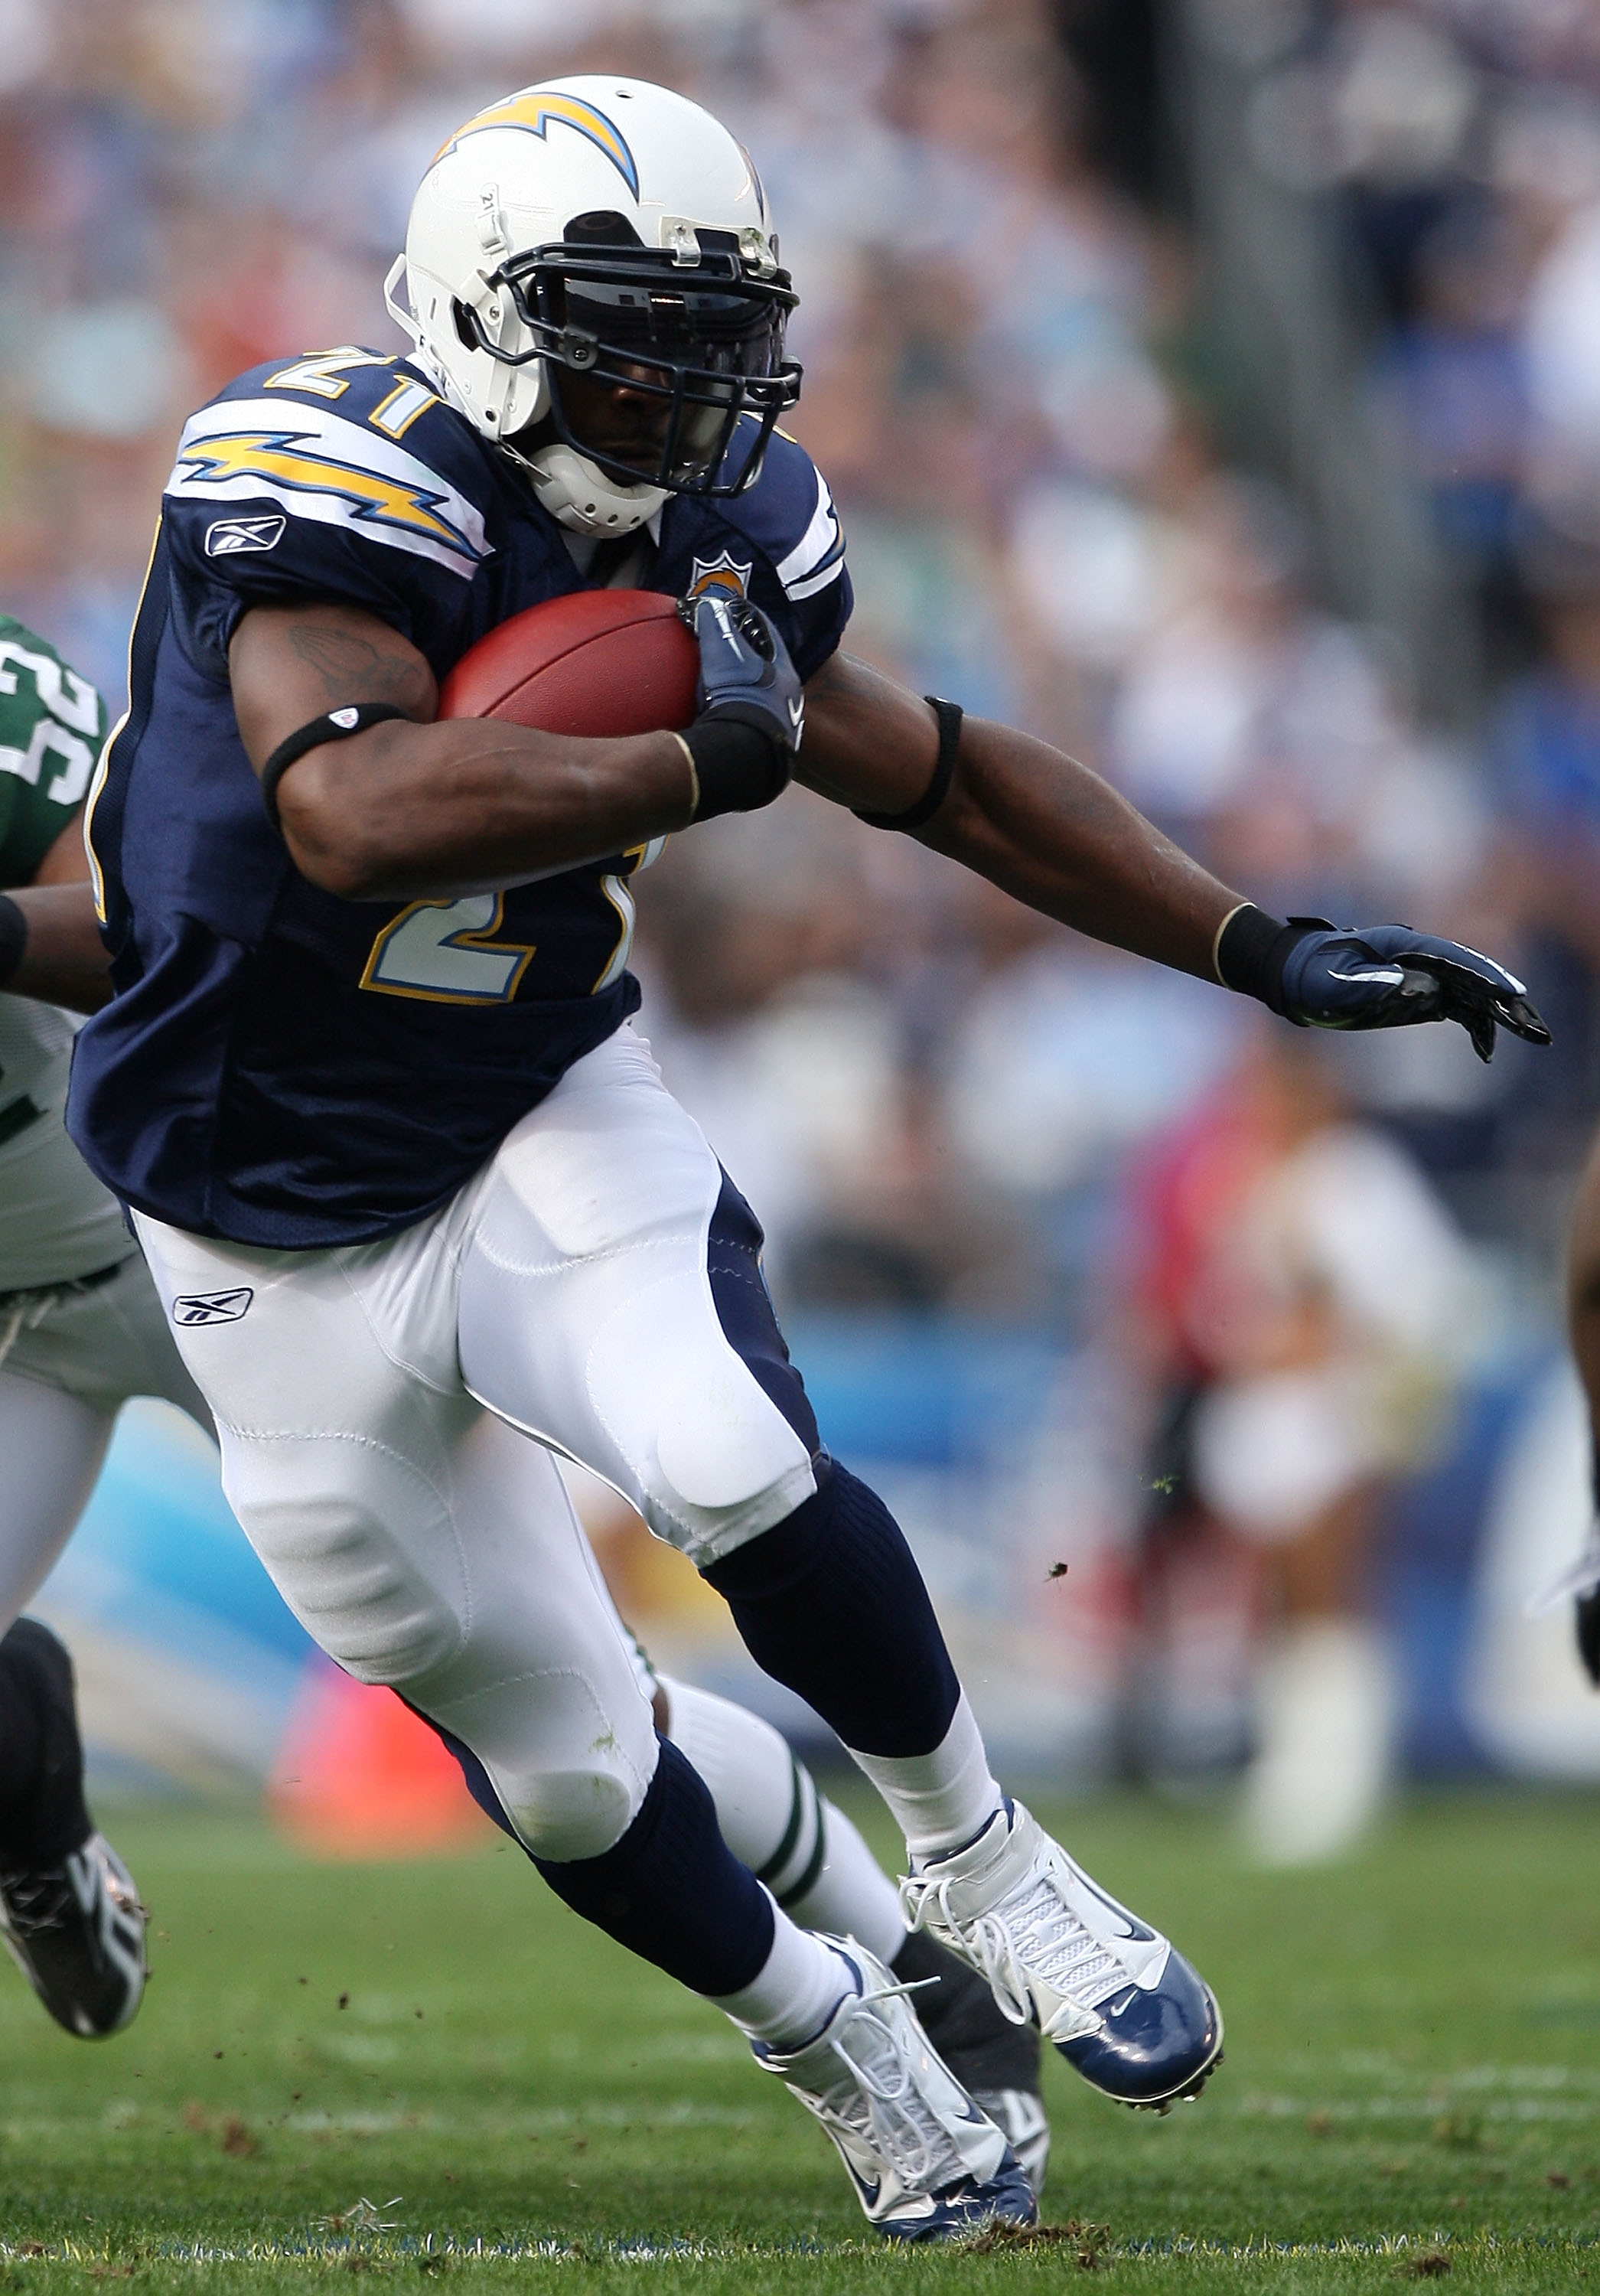 SAN DIEGO - JANUARY 17:  Running back LaDainian Tomlinson #21 of the San Diego Chargers runs with the ball against the New York Jets during the AFC Divisional Playoff Game at Qualcomm Stadium on January 17, 2010 in San Diego, California.  (Photo by Donald